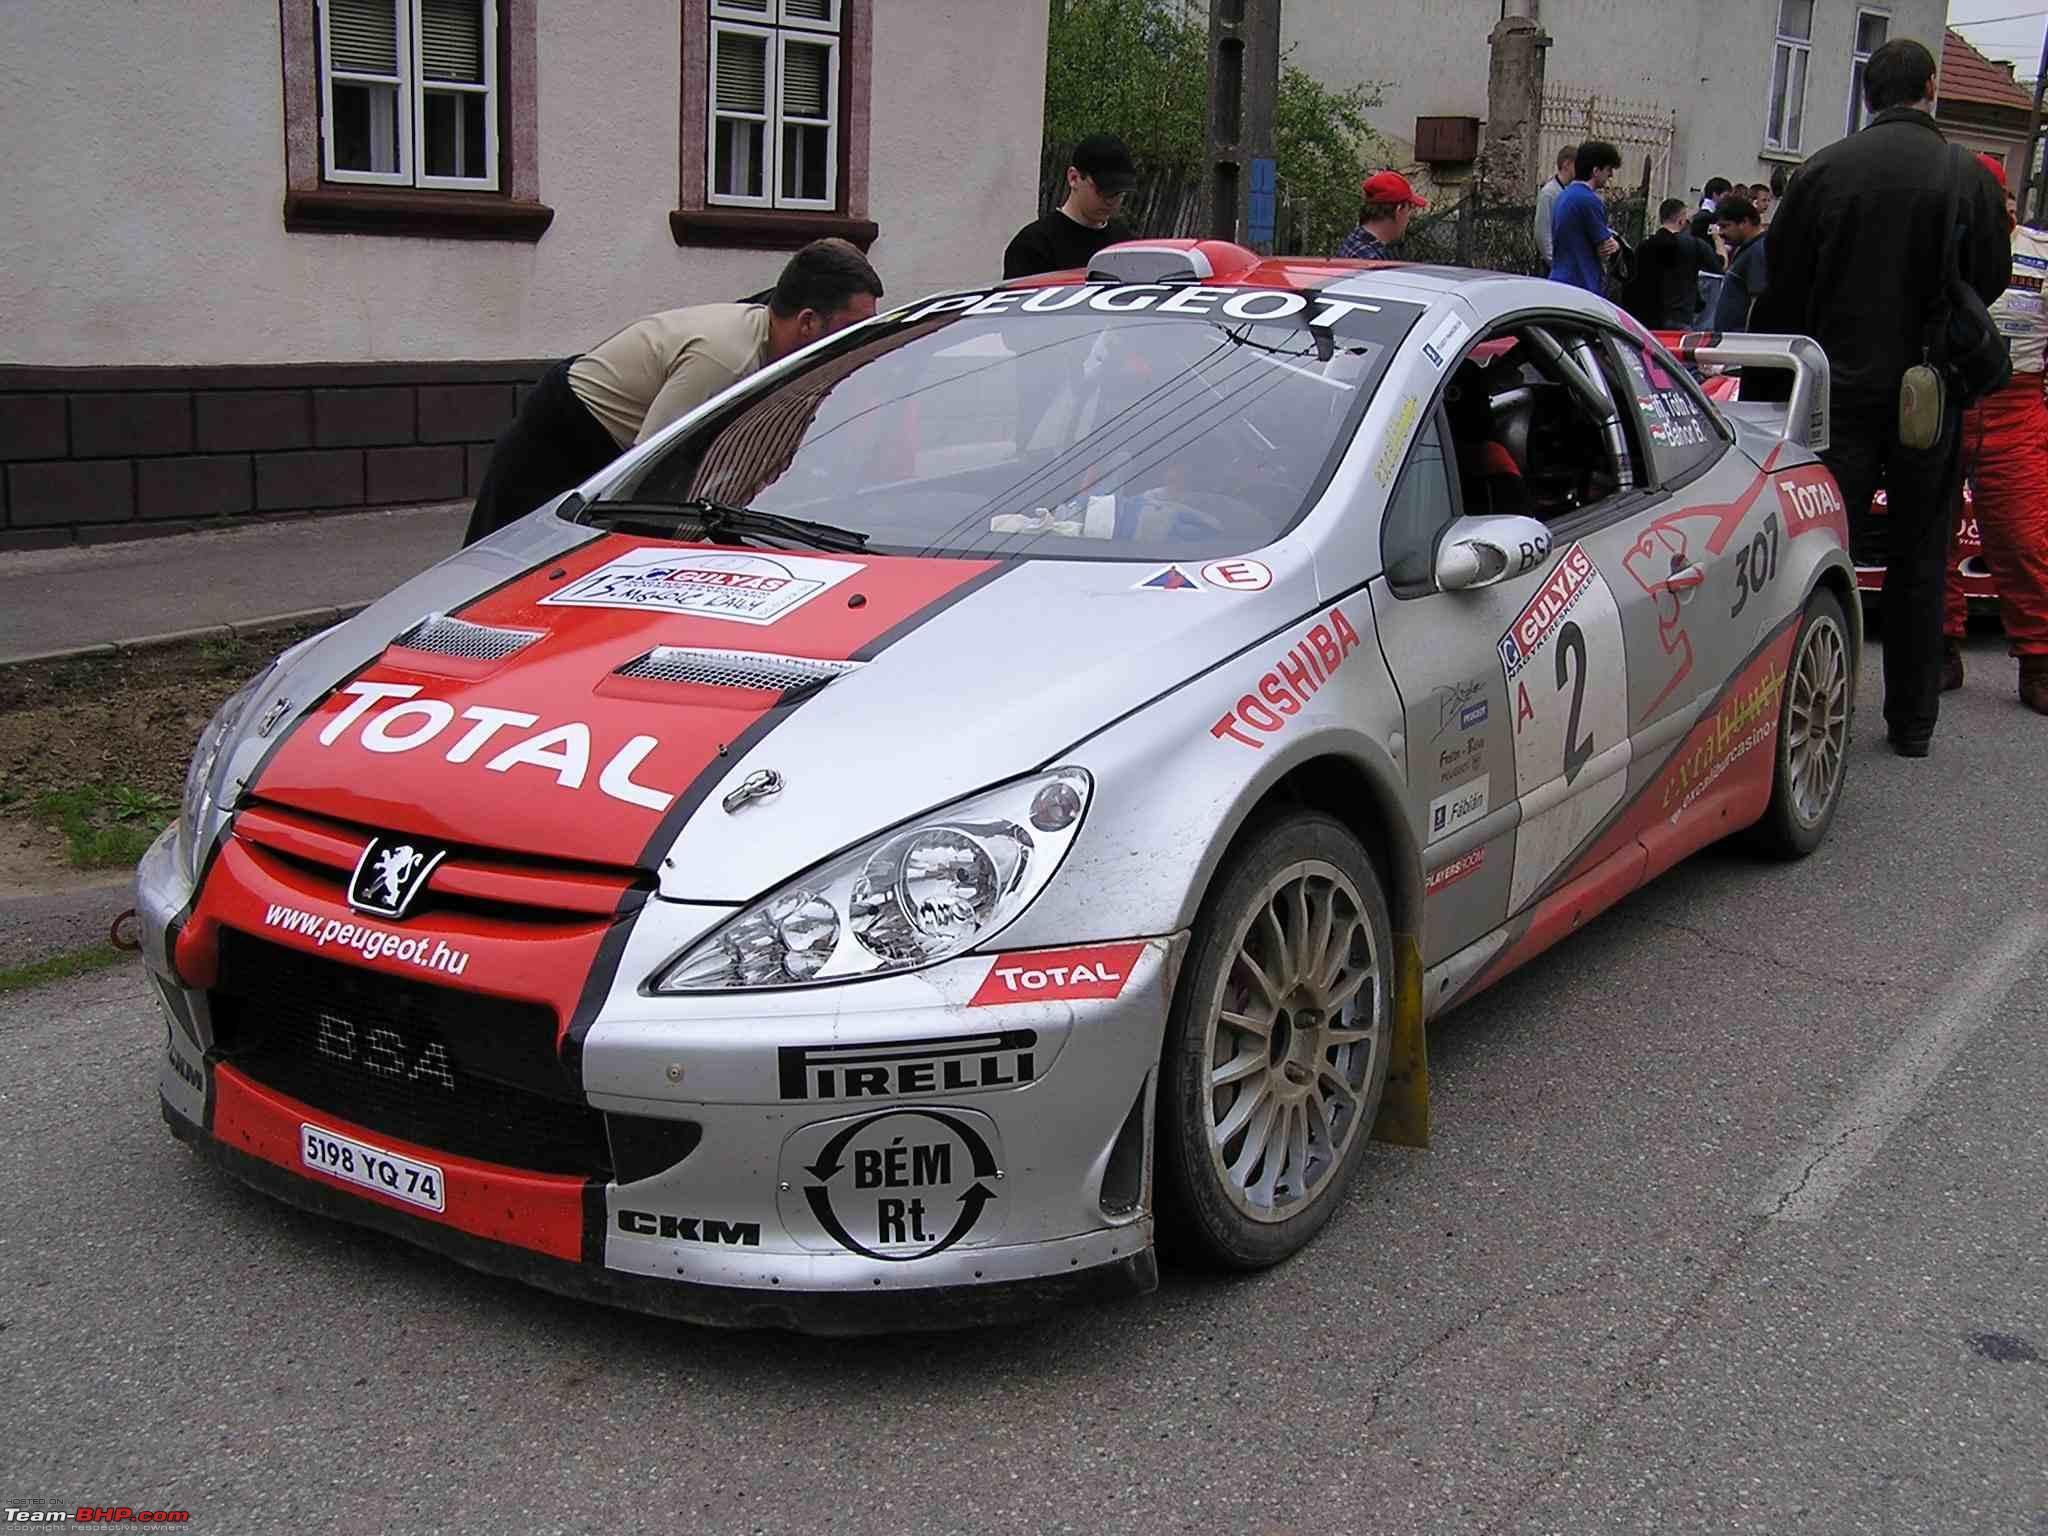 78056d1228816710-best-looking-wrc-car-pa